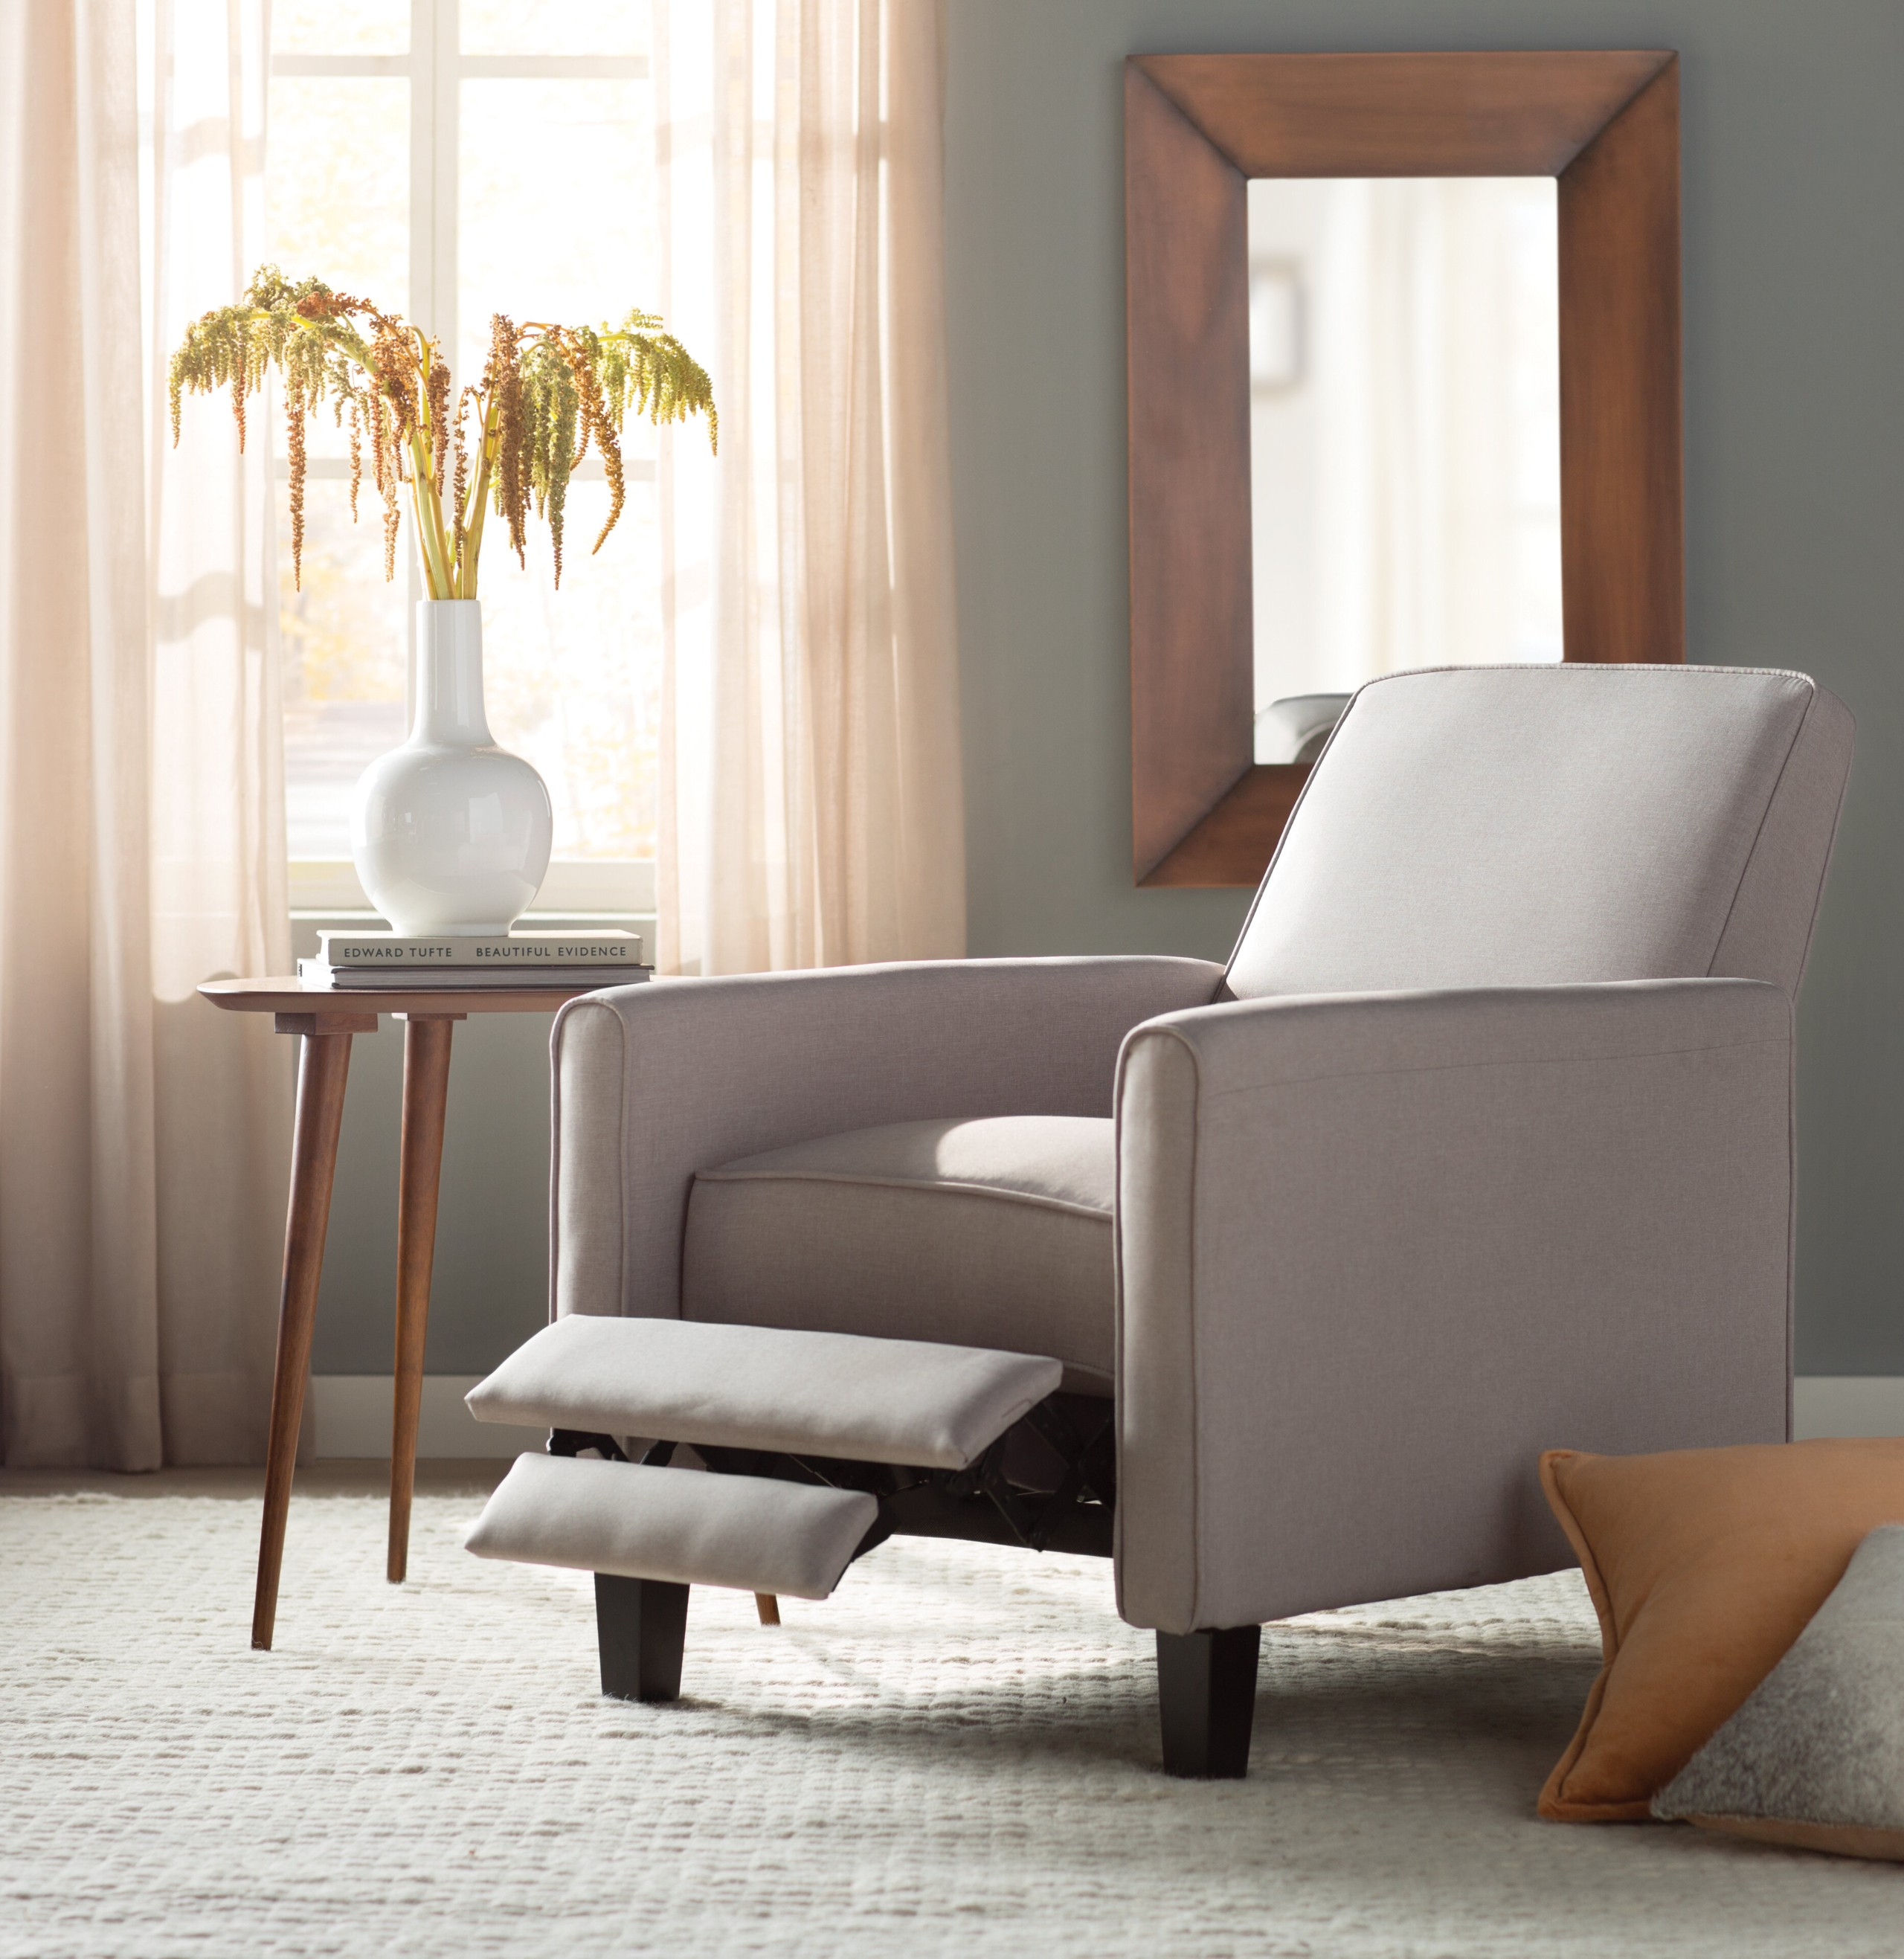 Compact Polyester Blend Manual Recliner & IKEA Recliner Chair - To Buy or Not in IKEA? - Foter